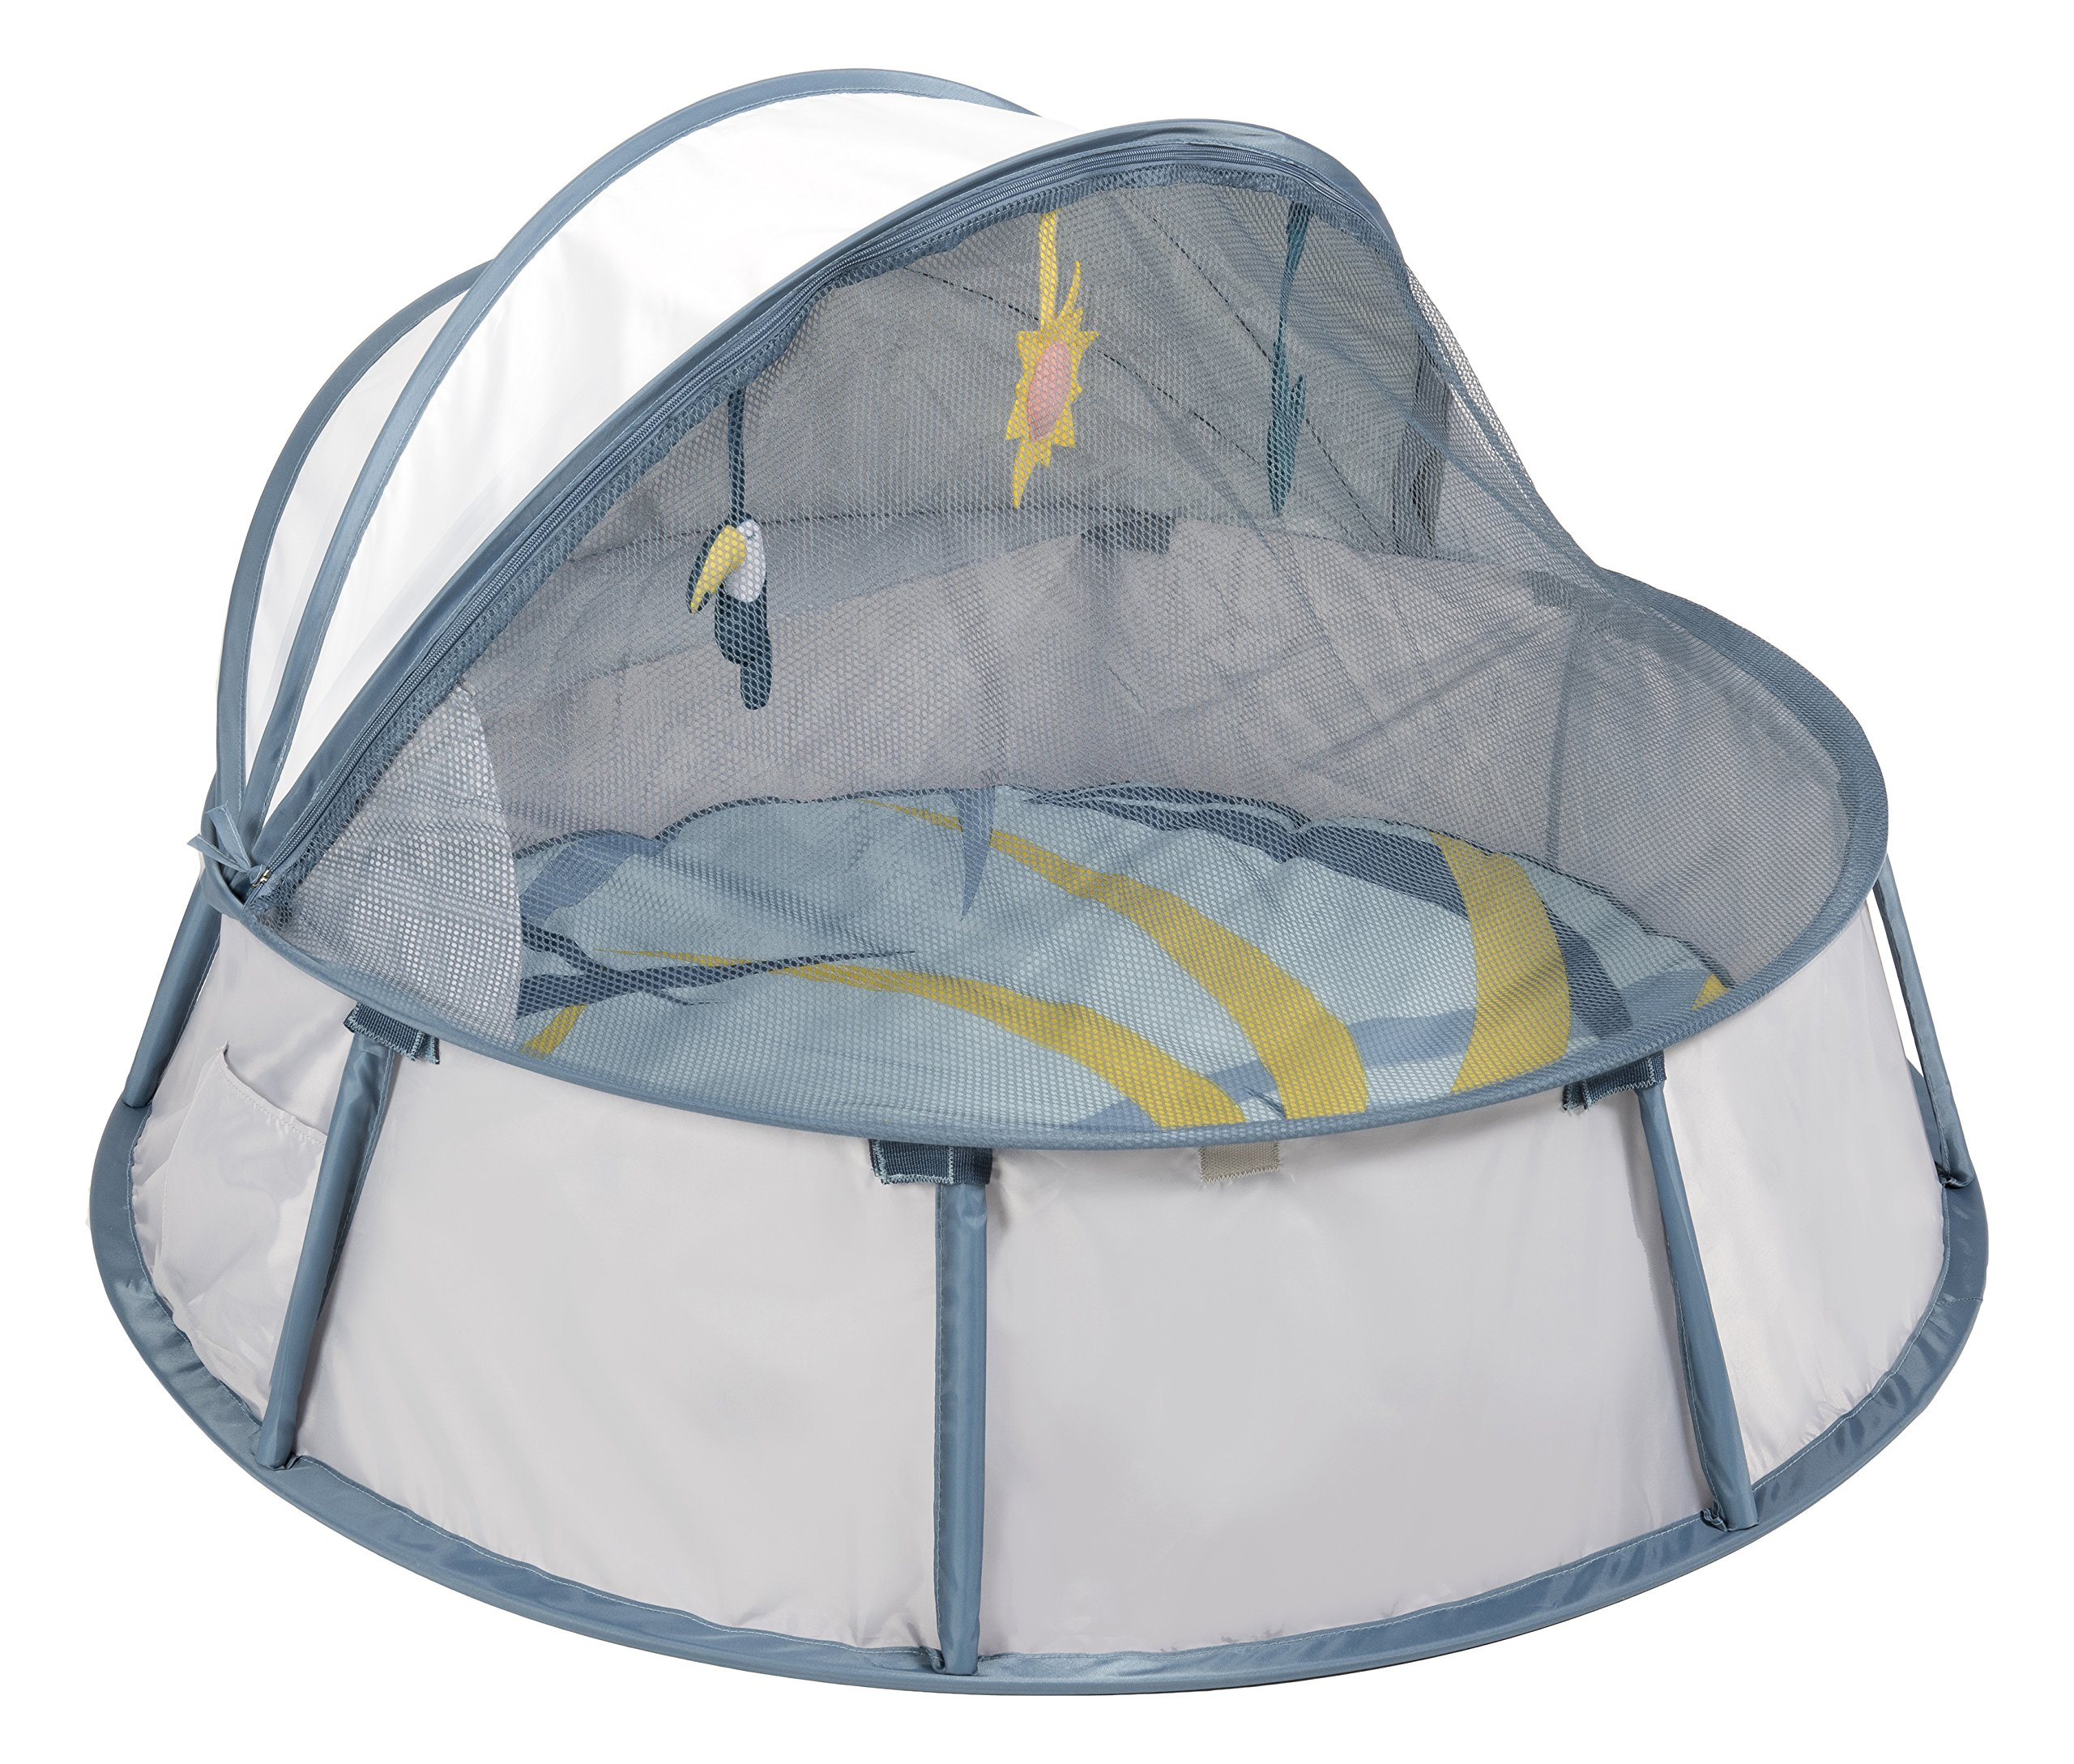 Babymoov Babyni Premium Baby Dome | Pop-Up Indoor & Outdoor Canopy for Babies to Safely Sleep, Rest and Play (2019 Summer Essential)